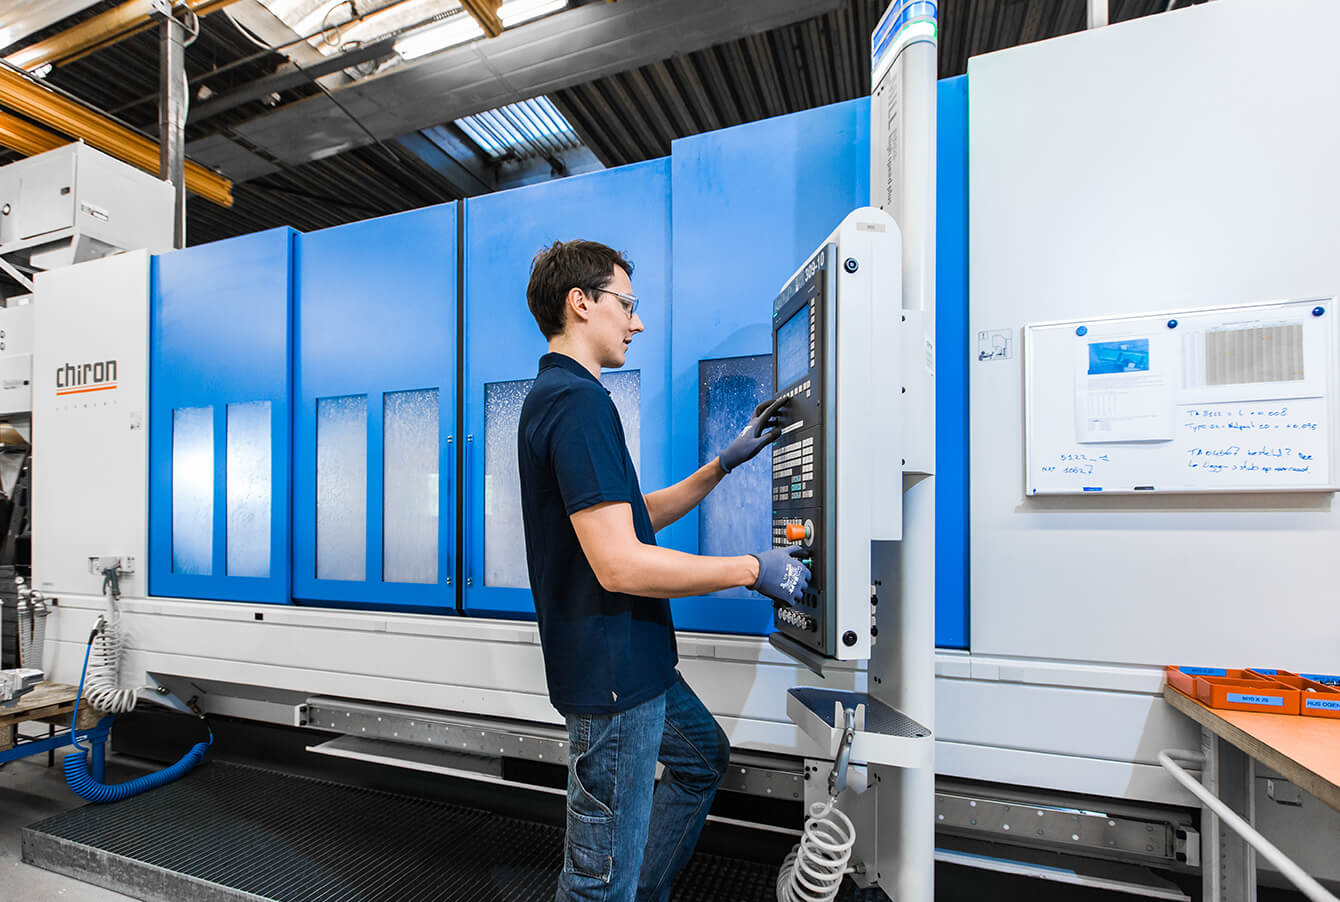 KMWE has an extensive, state-of-the-art, machine equipment for producing complex parts.